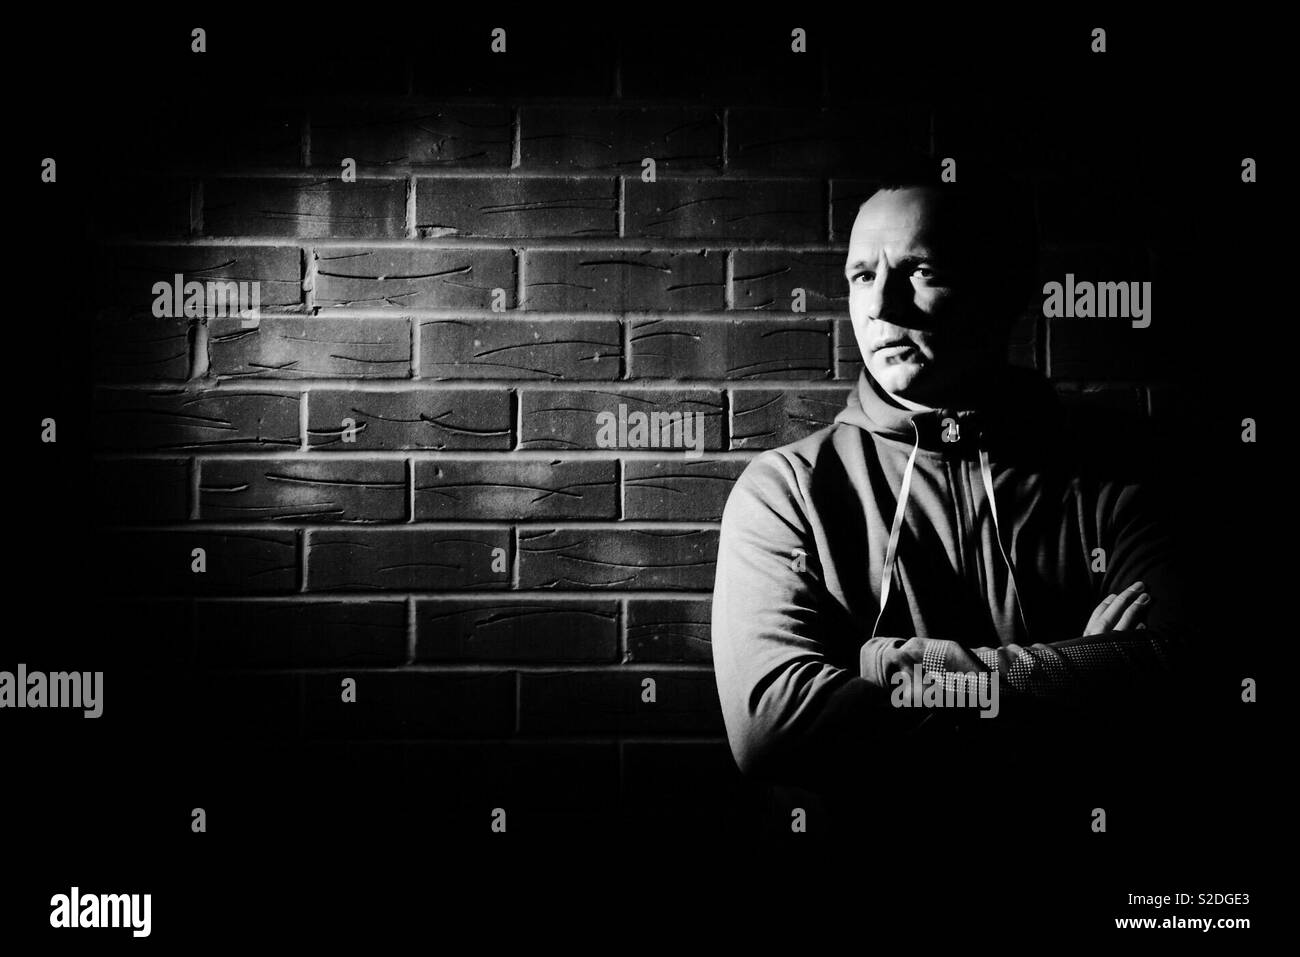 Portrait in the dark against brick wall - Stock Image